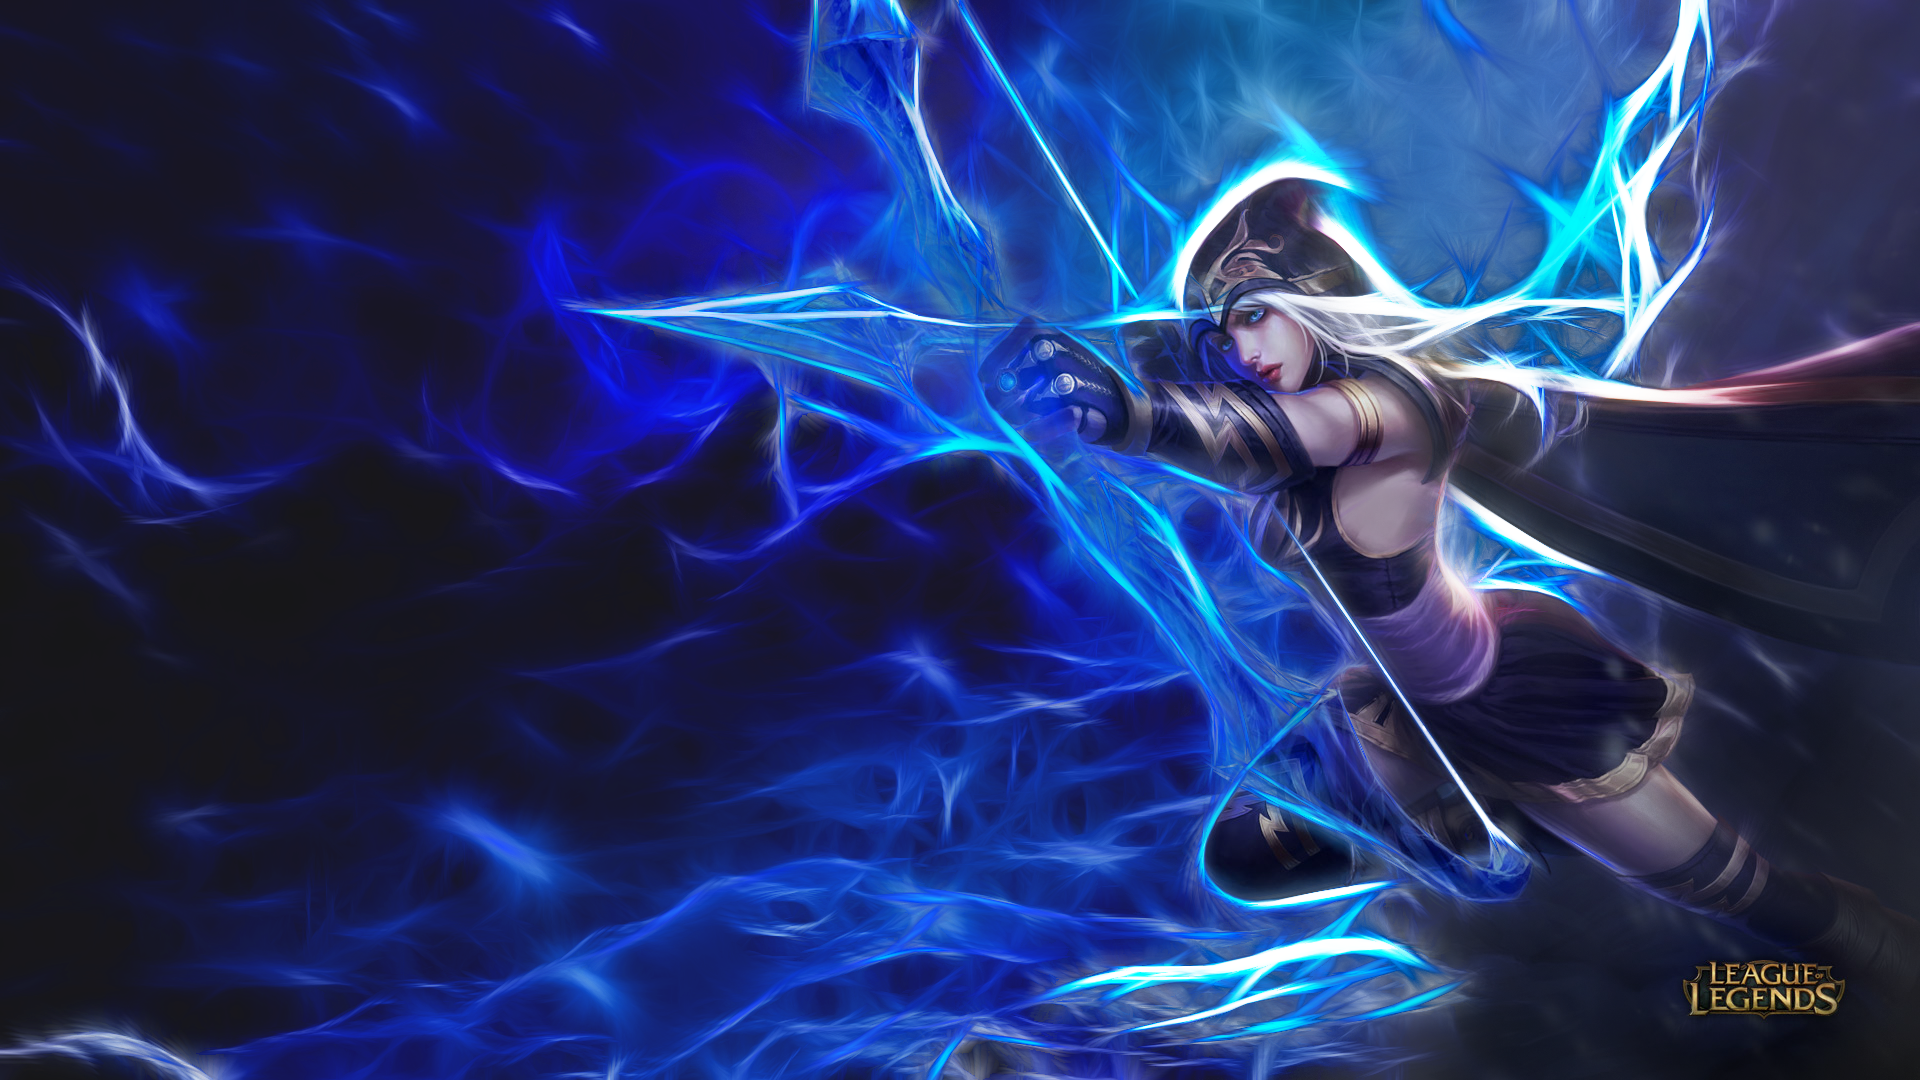 95 Ashe League Of Legends Hd Wallpapers Background Images